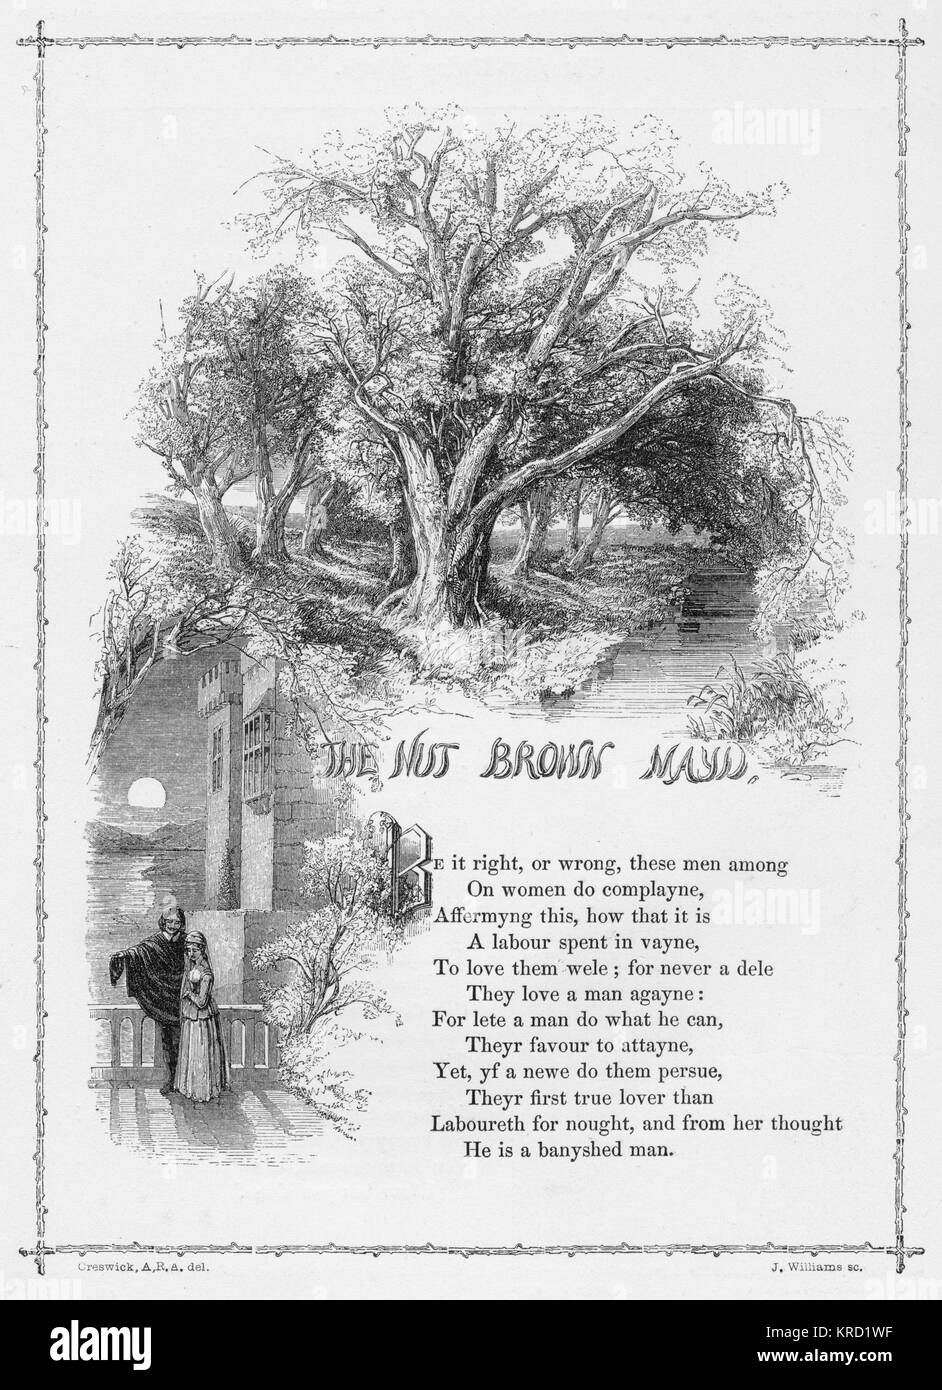 THE NUT BROWN MAYD (Maid - Maiden)  Popular British Ballad by an anonymous author, praising the virtues of a devoted woman.  First appearing around the 16th century.     Date: 1853 Stock Photo